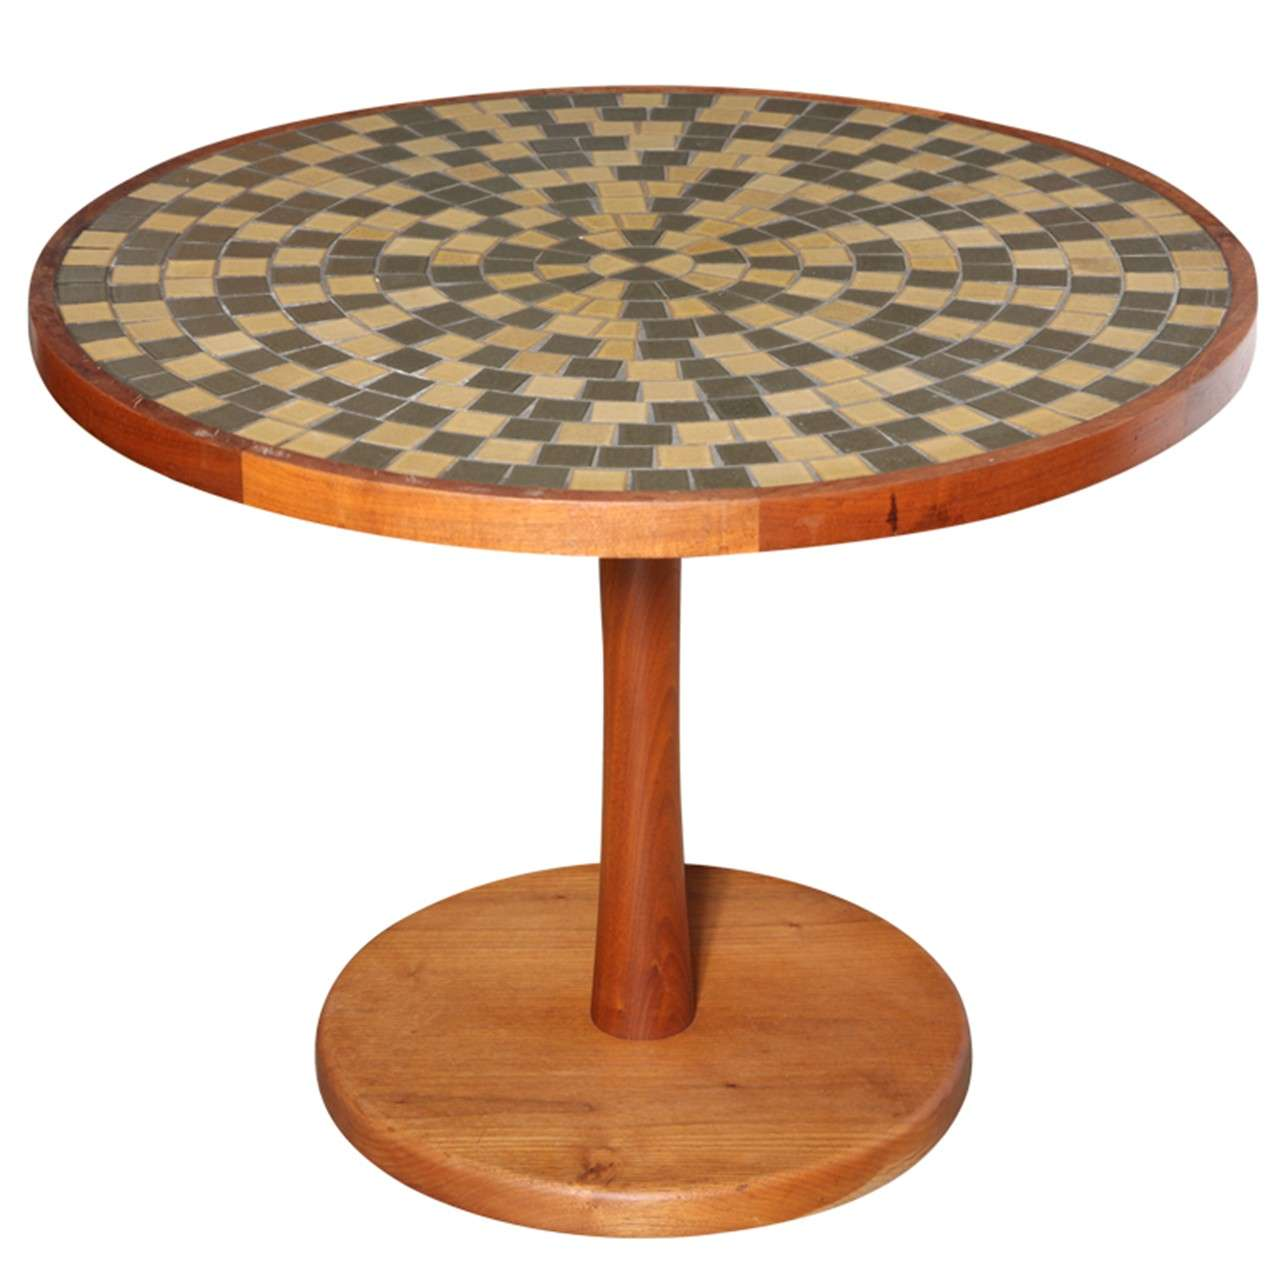 Jane And Gordon Martz Earthen Ceramic Tile Top Table, Circa 1960 1